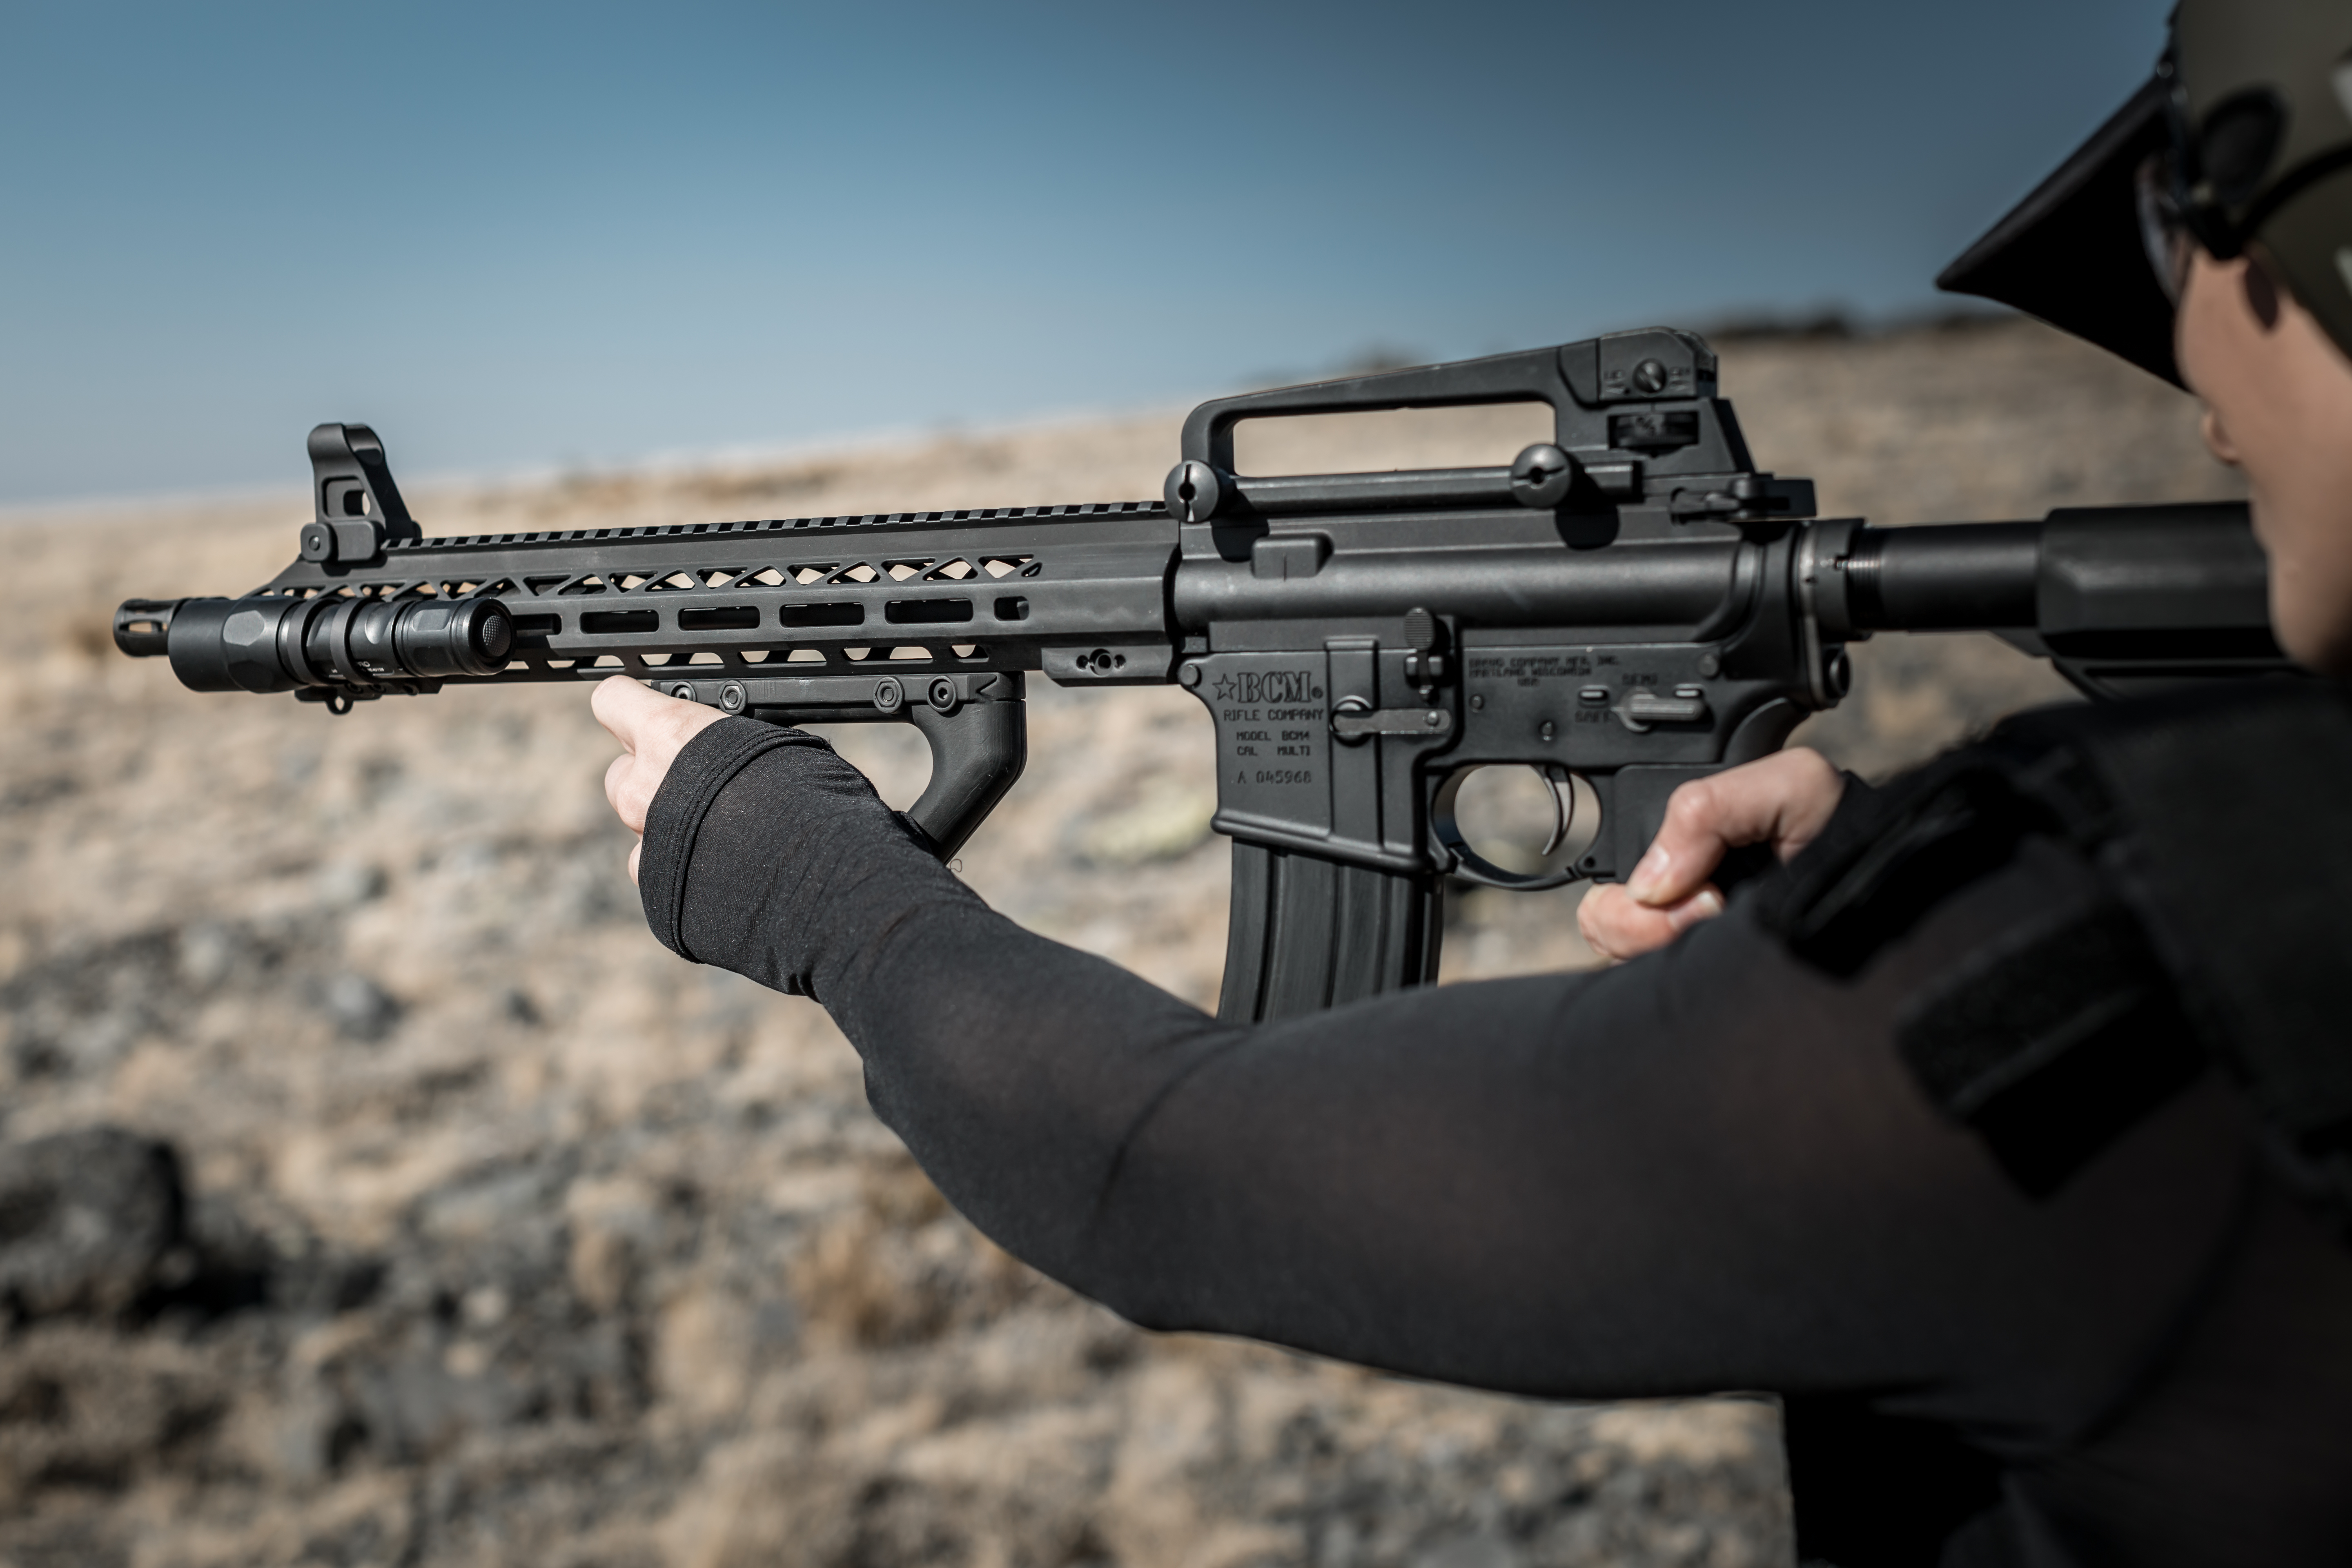 NEW Mesatac™ Pyramid™ free float handguards for AR-15 rifles and carbines